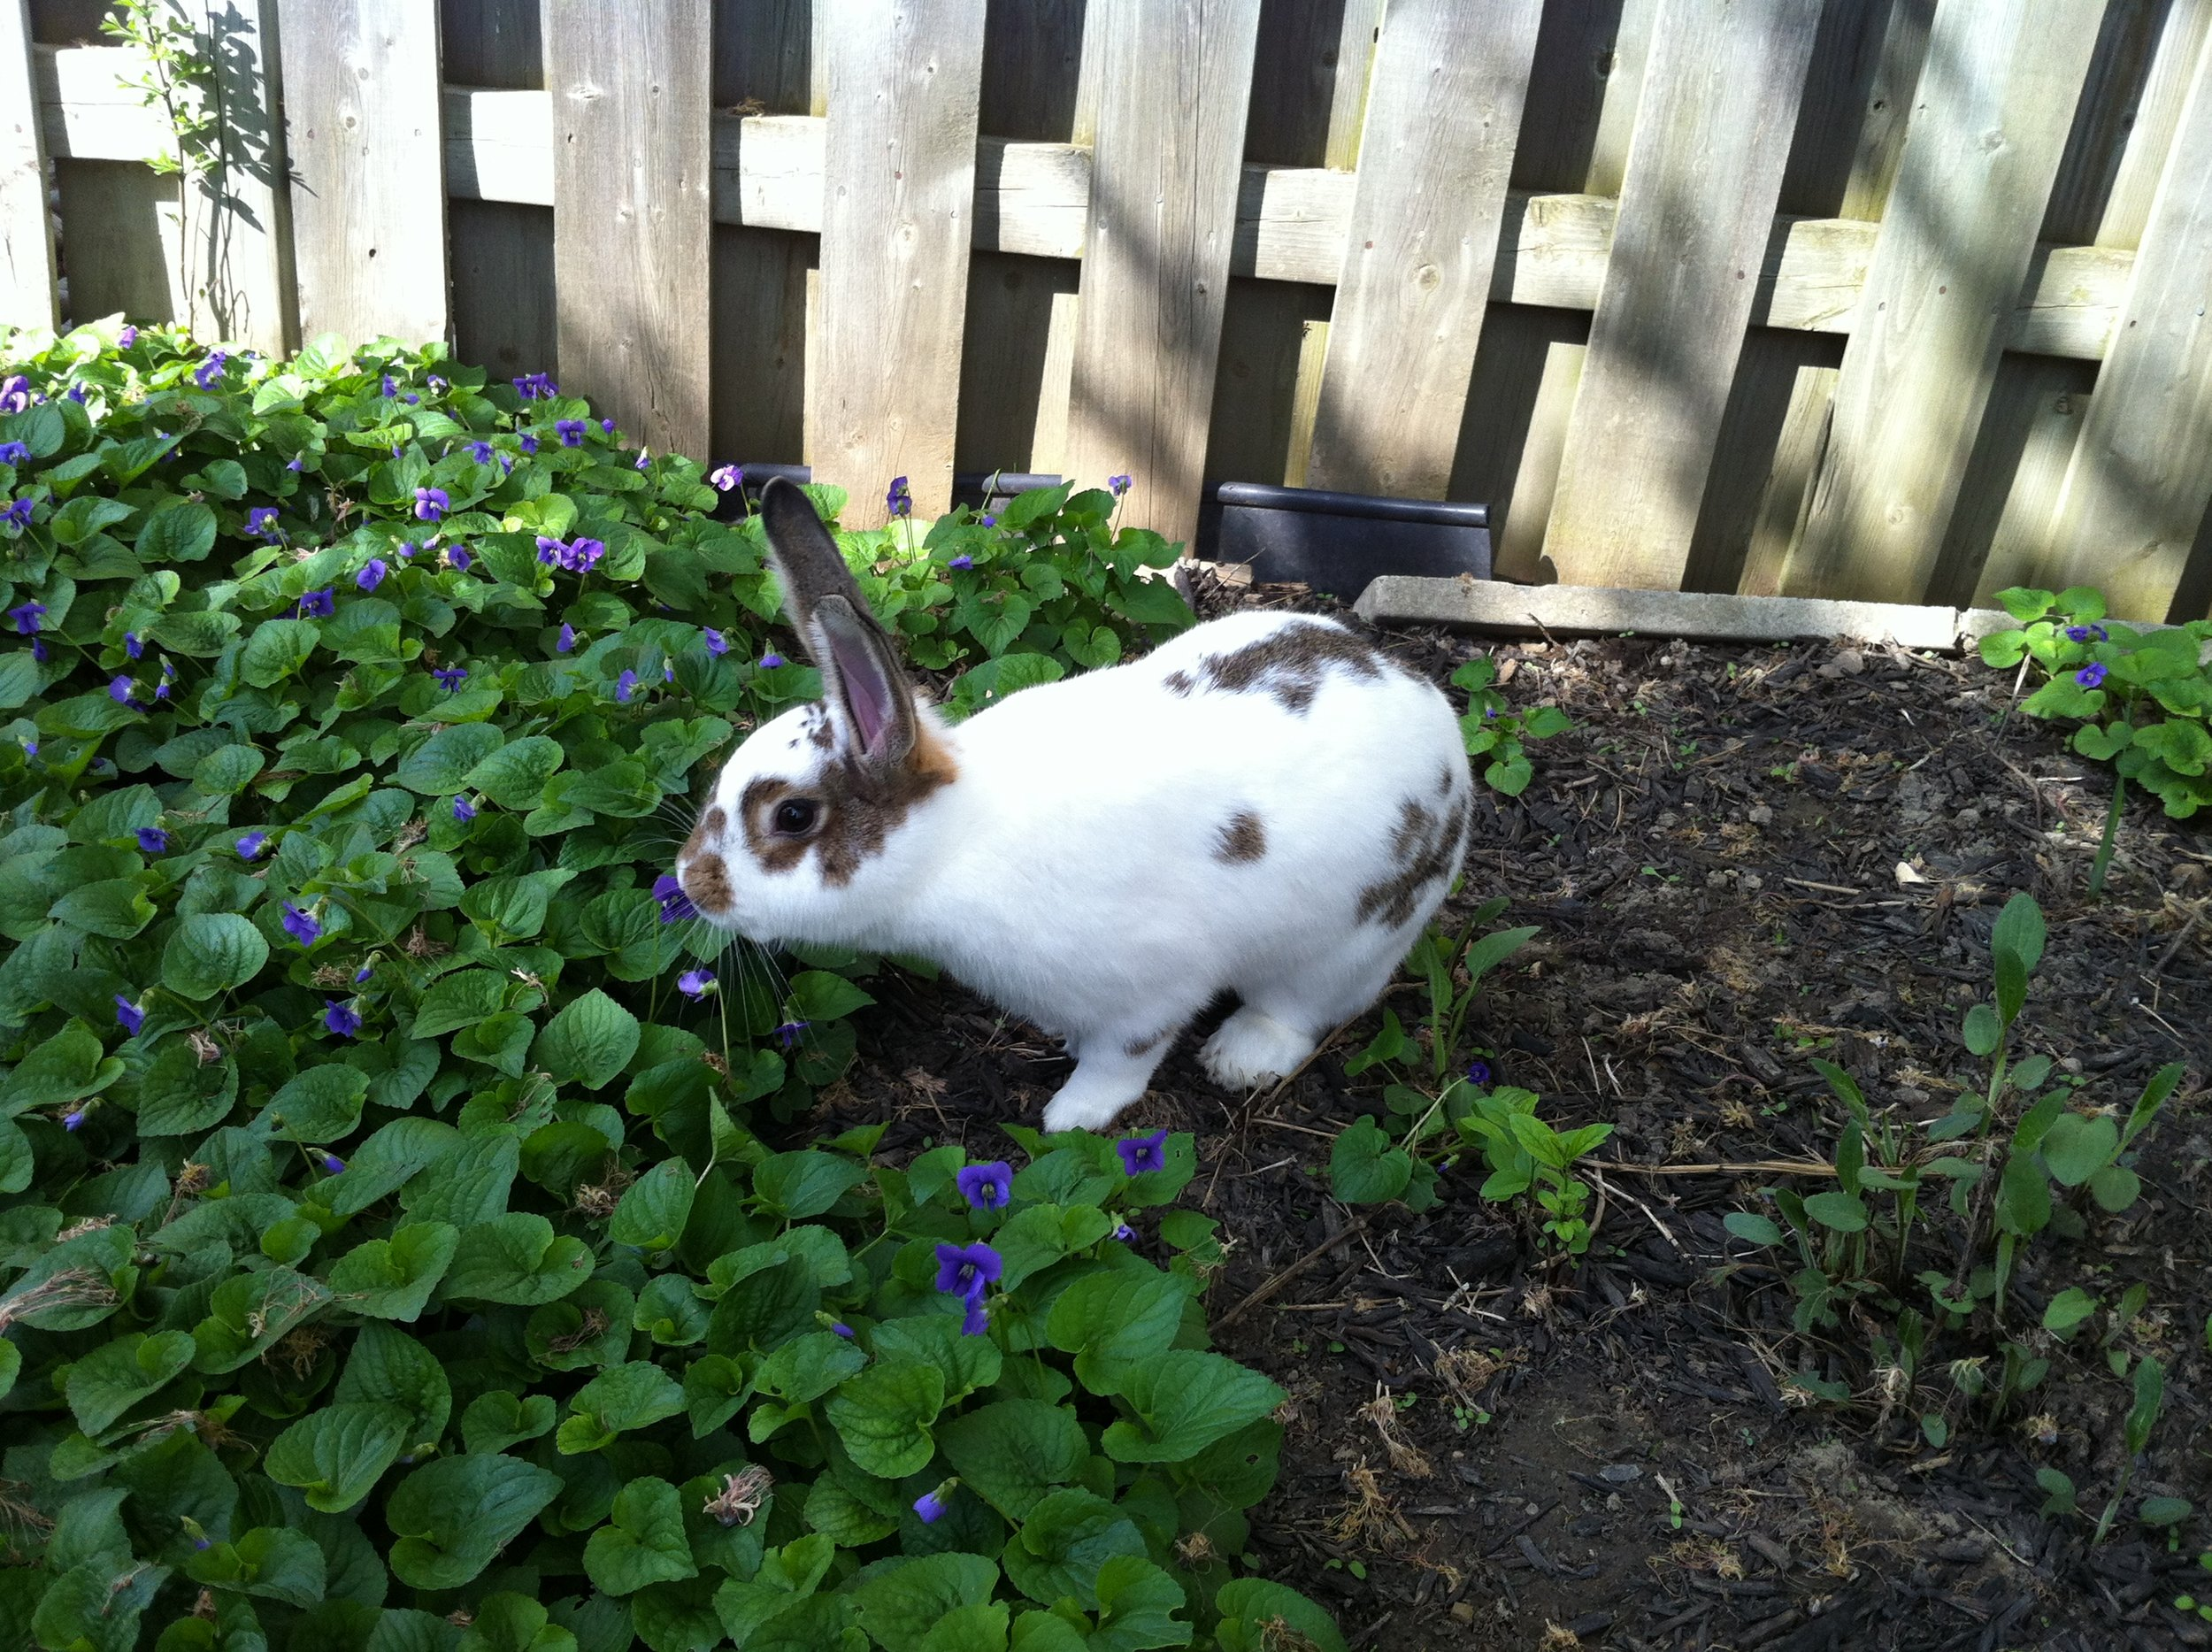 Botanist Bunny Identifies a Flower by Its Scent